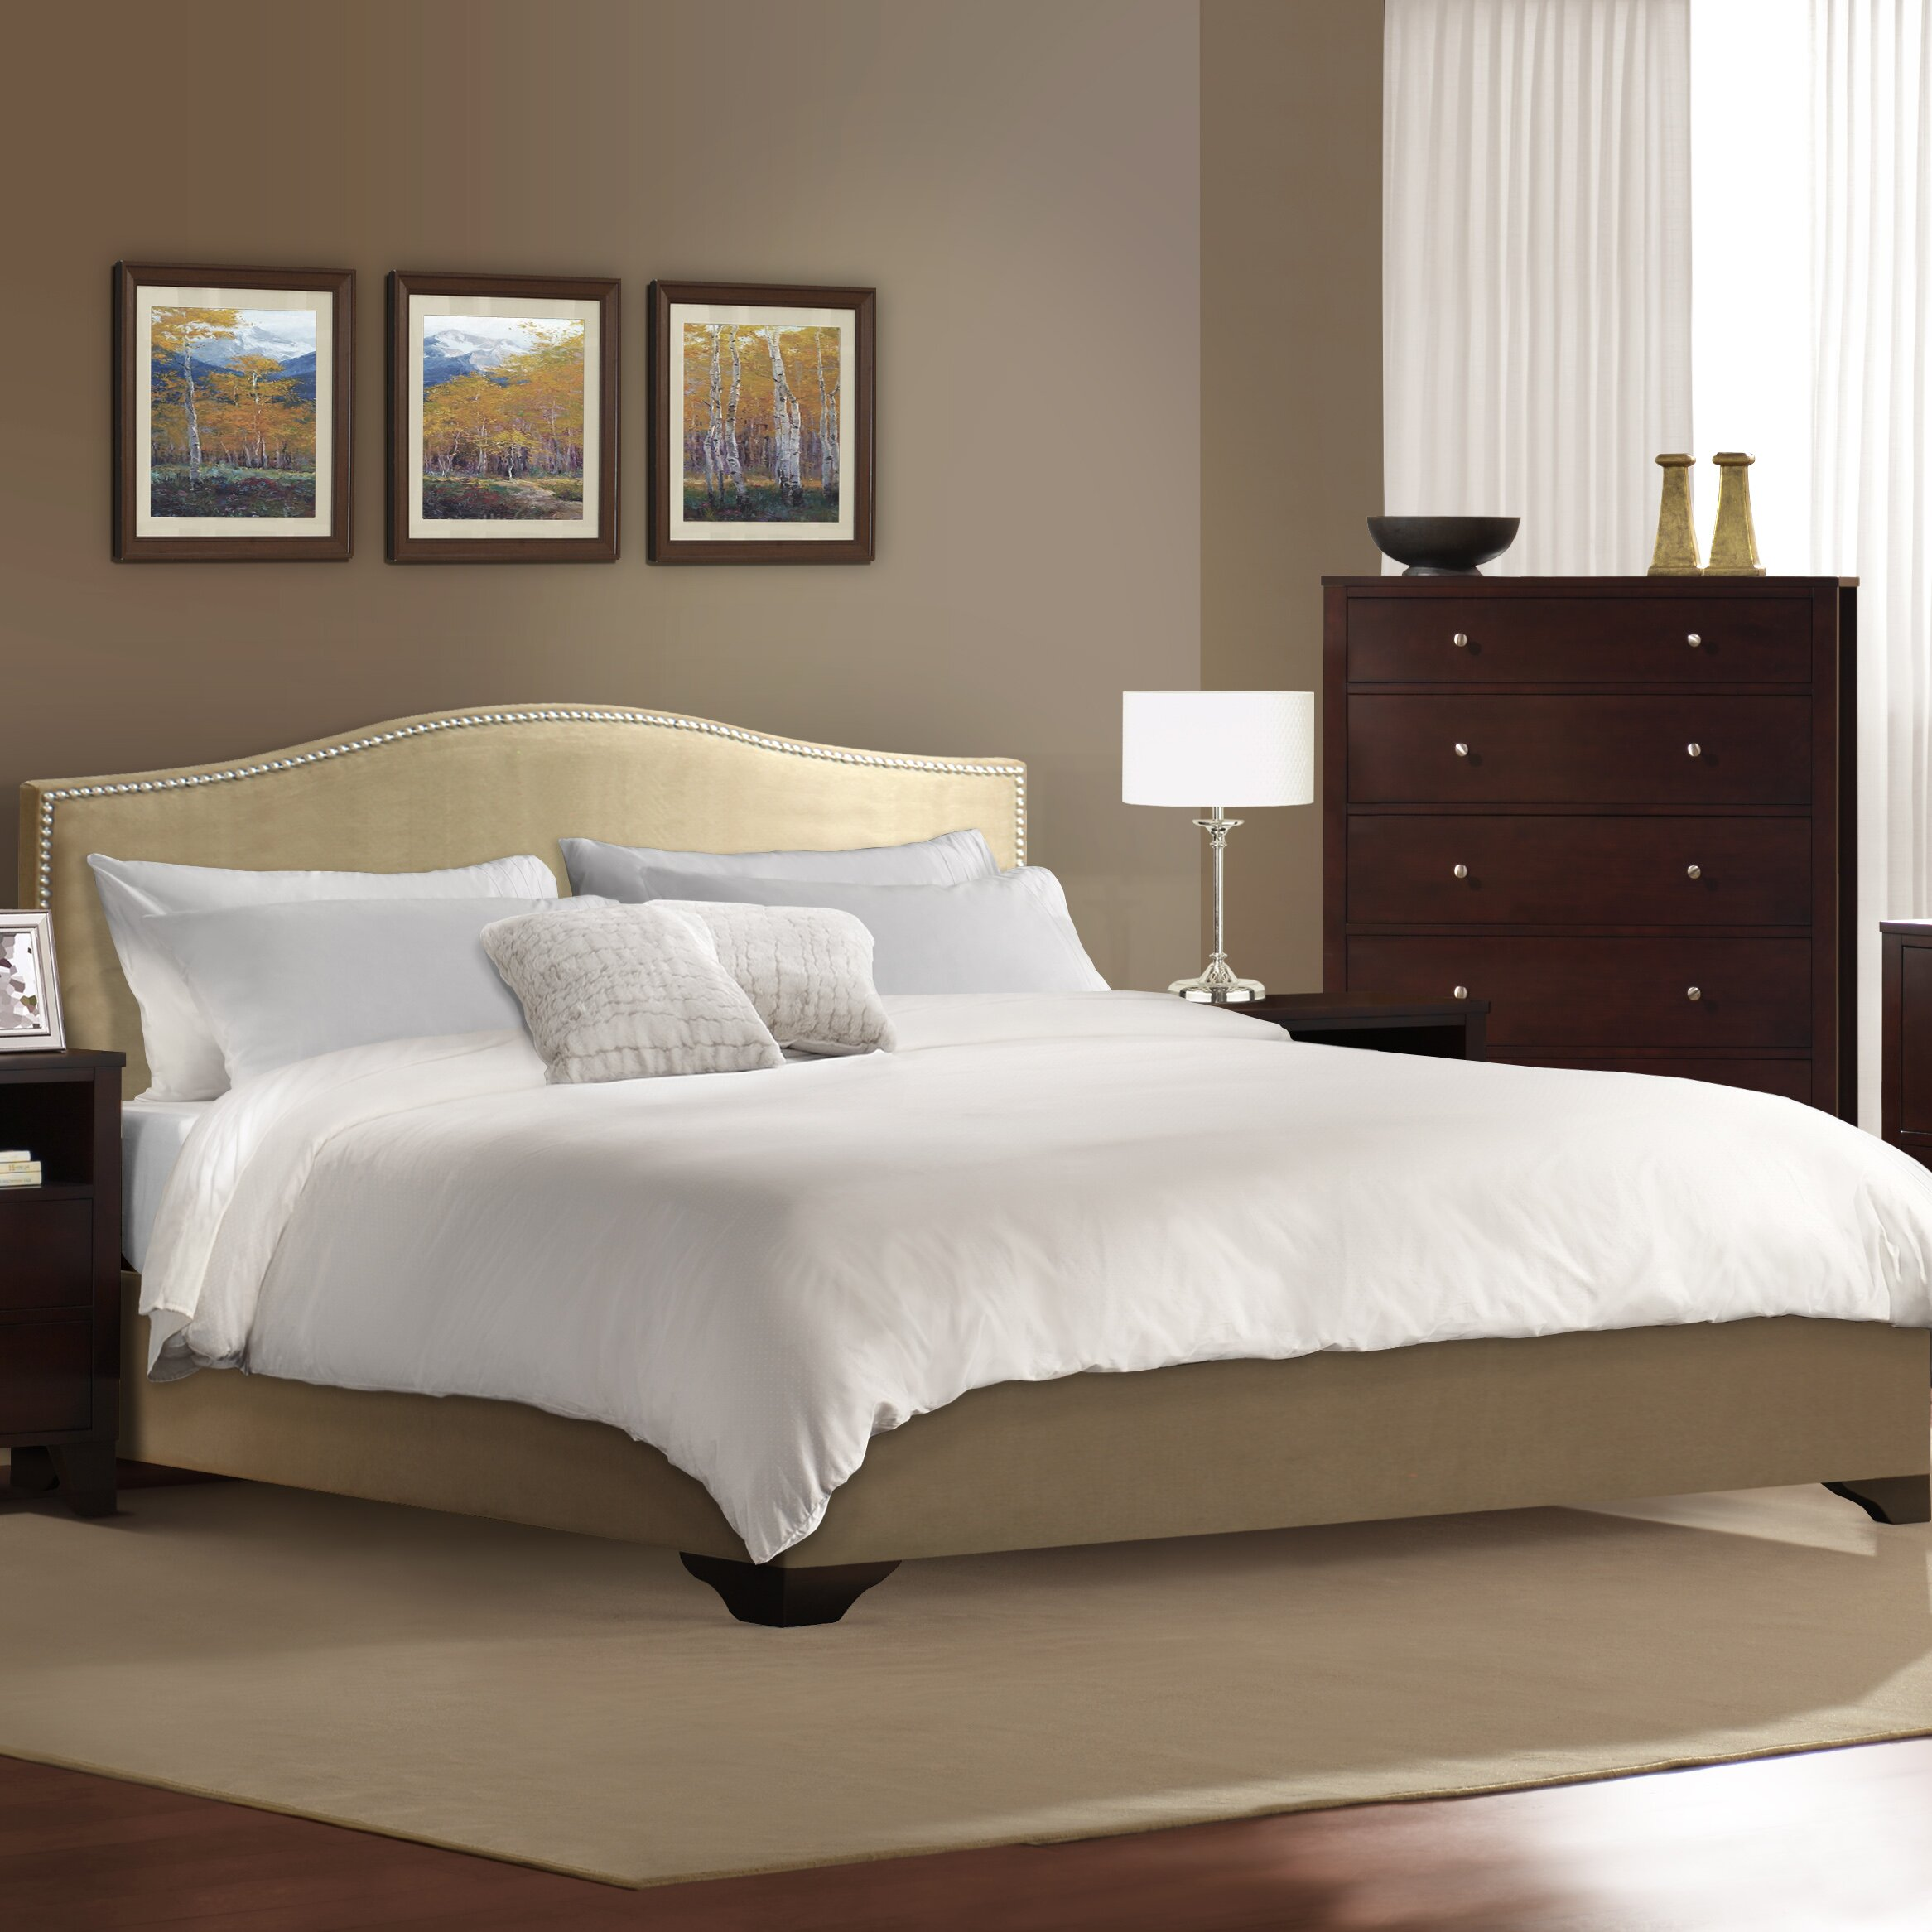 Furniture Bedroom Furniture Queen Bedroom Sets LifeStyle Solutions. Bedroom Furniture Solutions